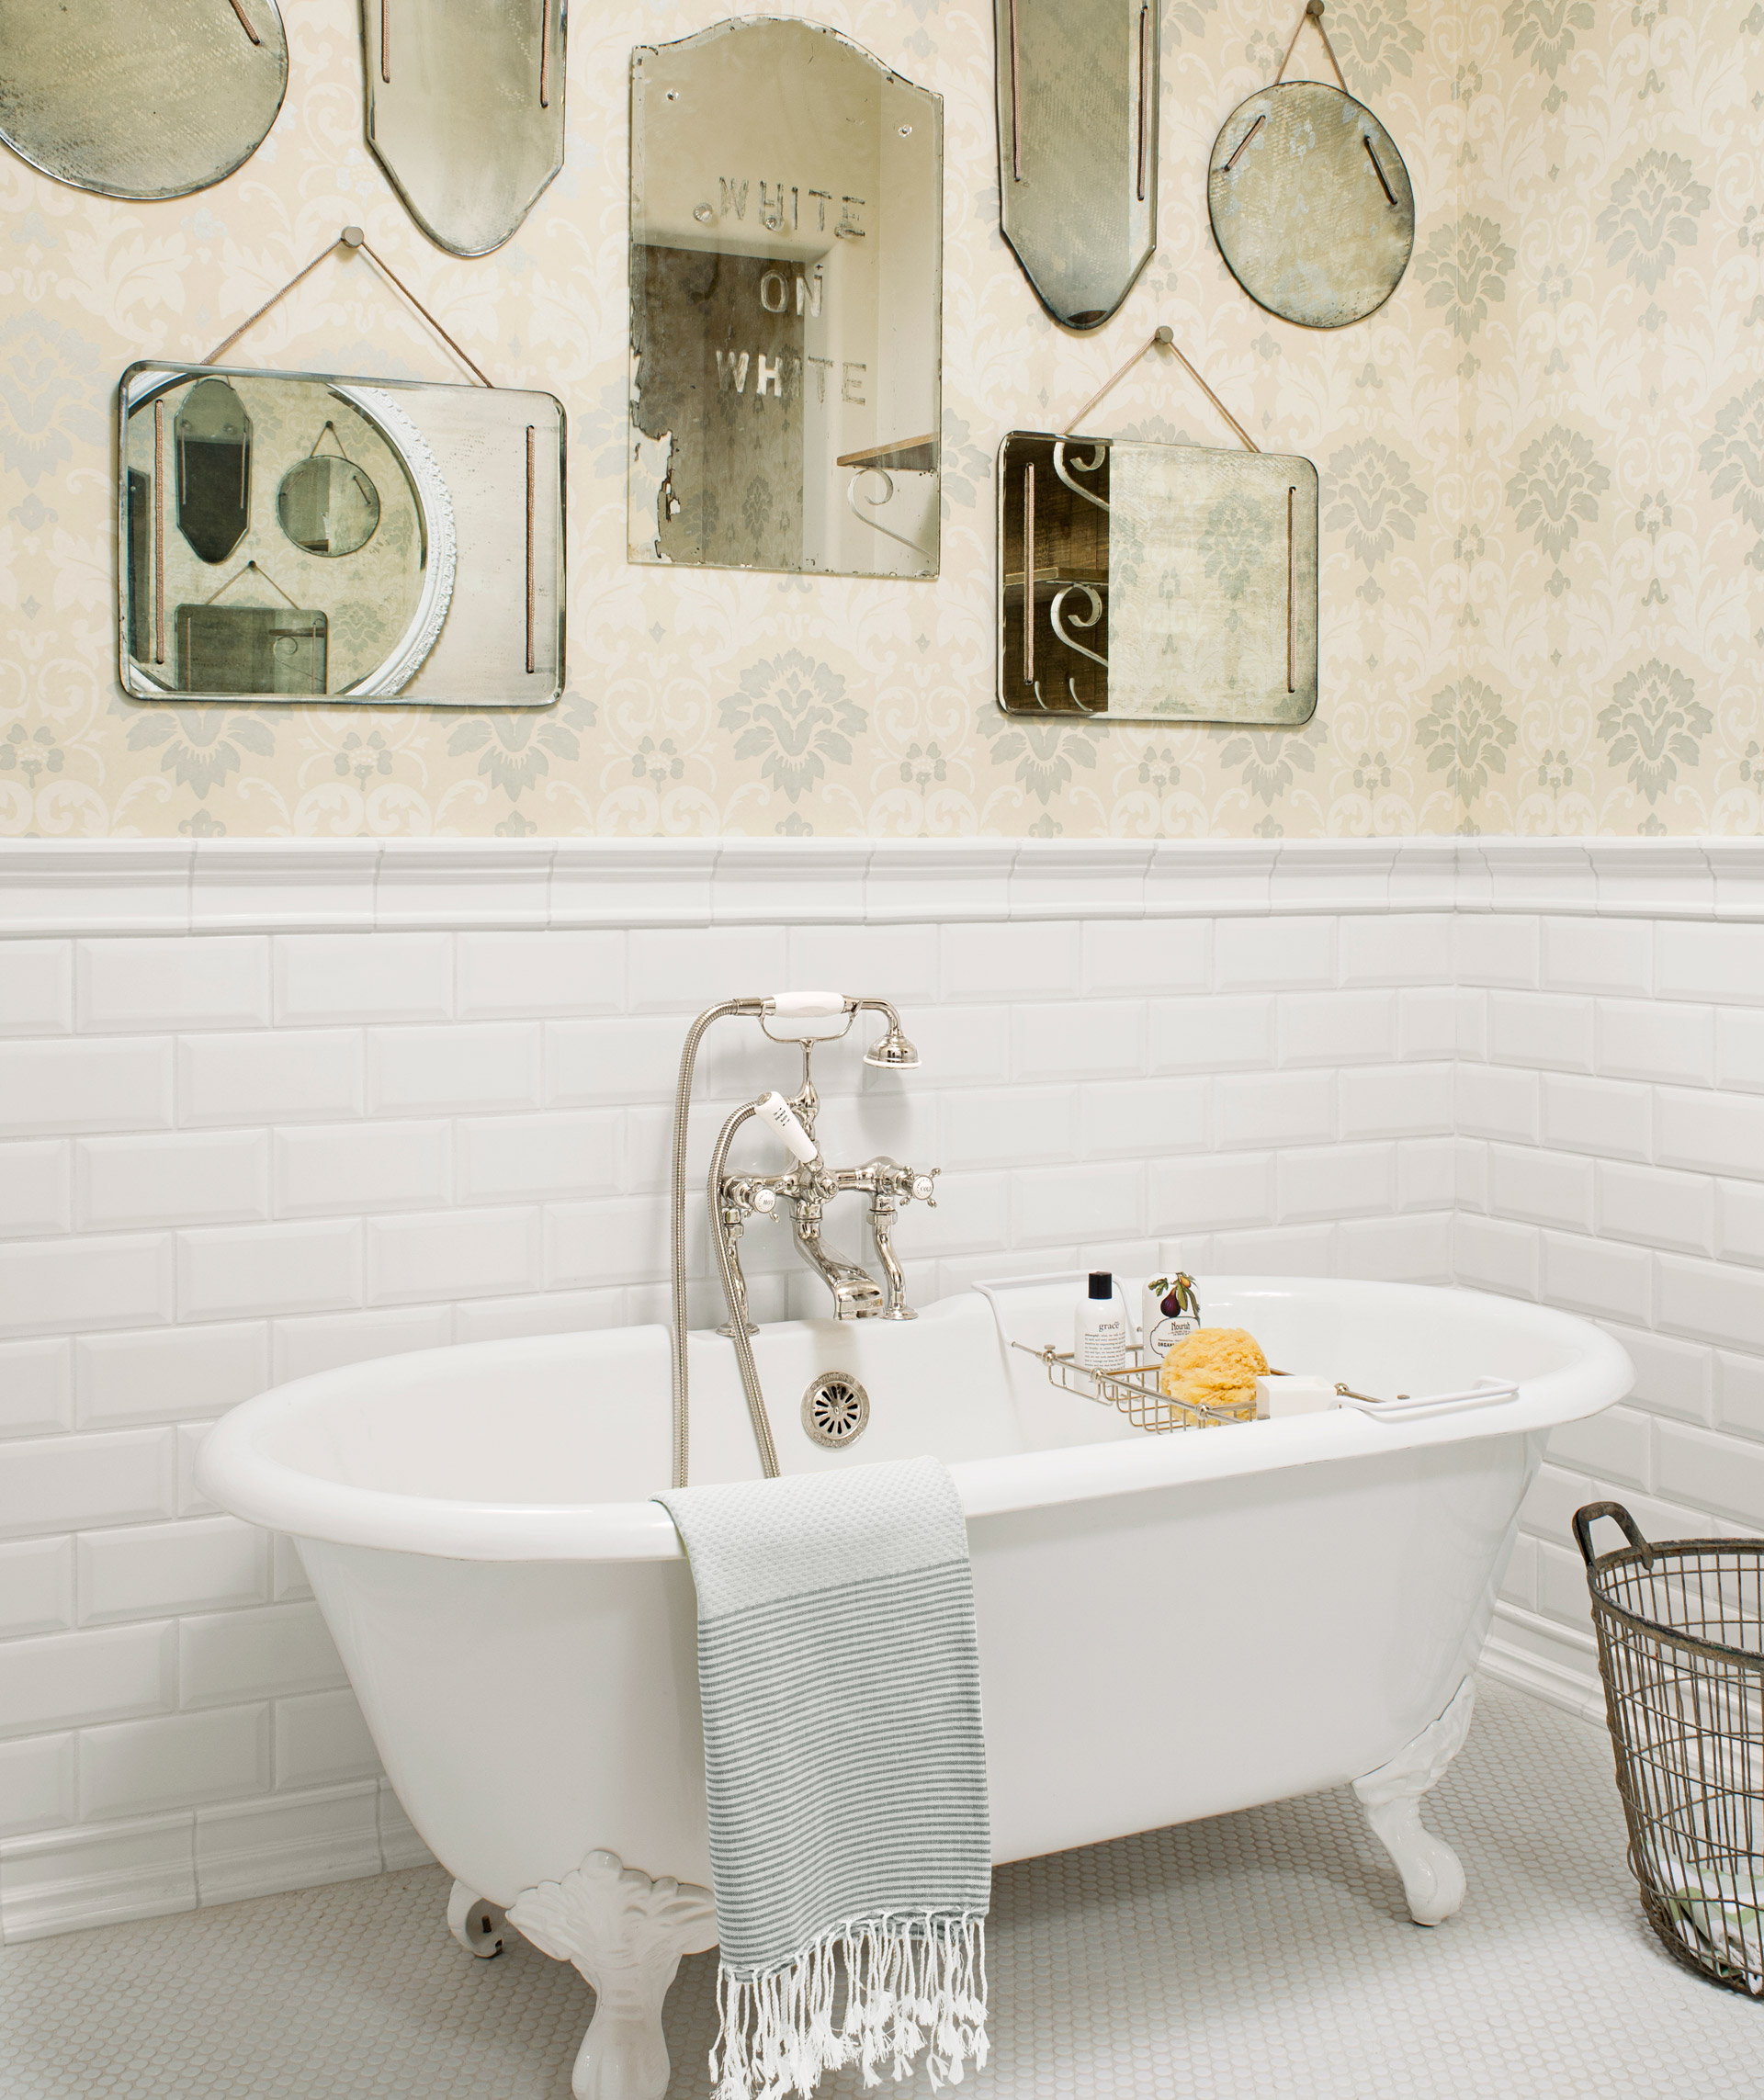 Small Bathroom Wall Decor Ideas Unique 90 Best Bathroom Decorating Ideas  Decor & Design Inspirations Decorating Inspiration